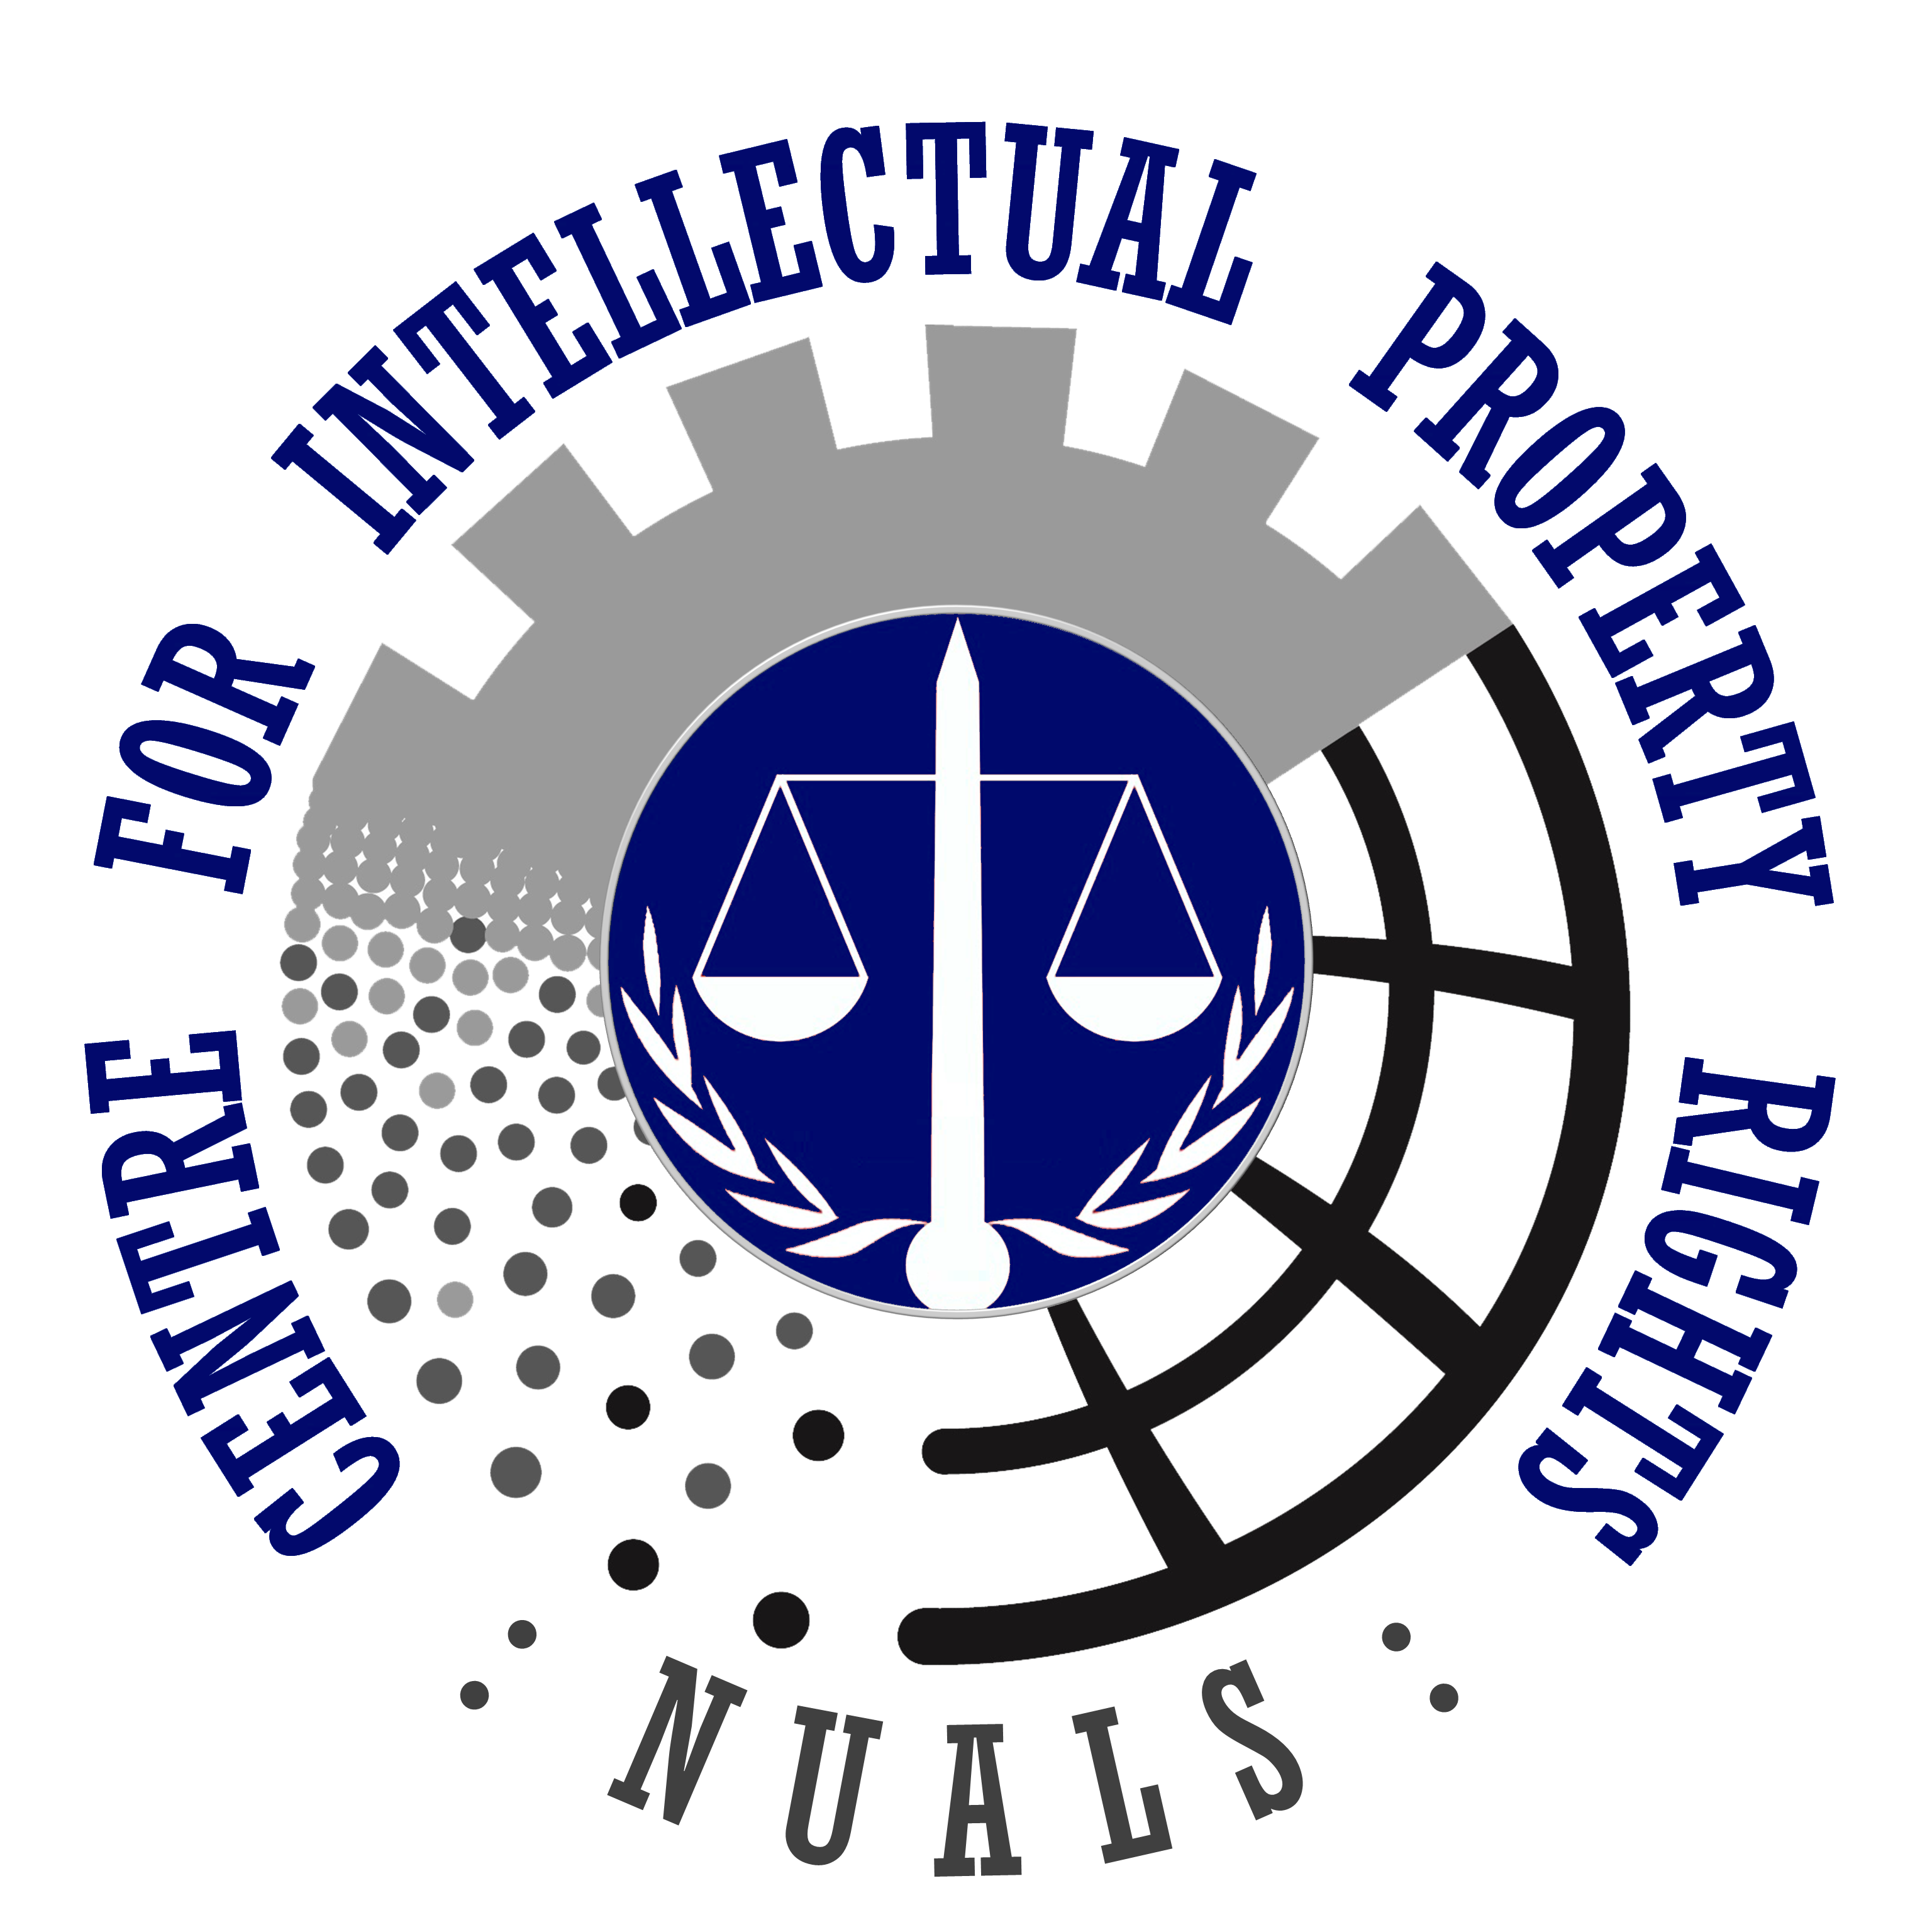 Call for Papers: NUALS Intellectual Property Law Review: Submit by Dec 15